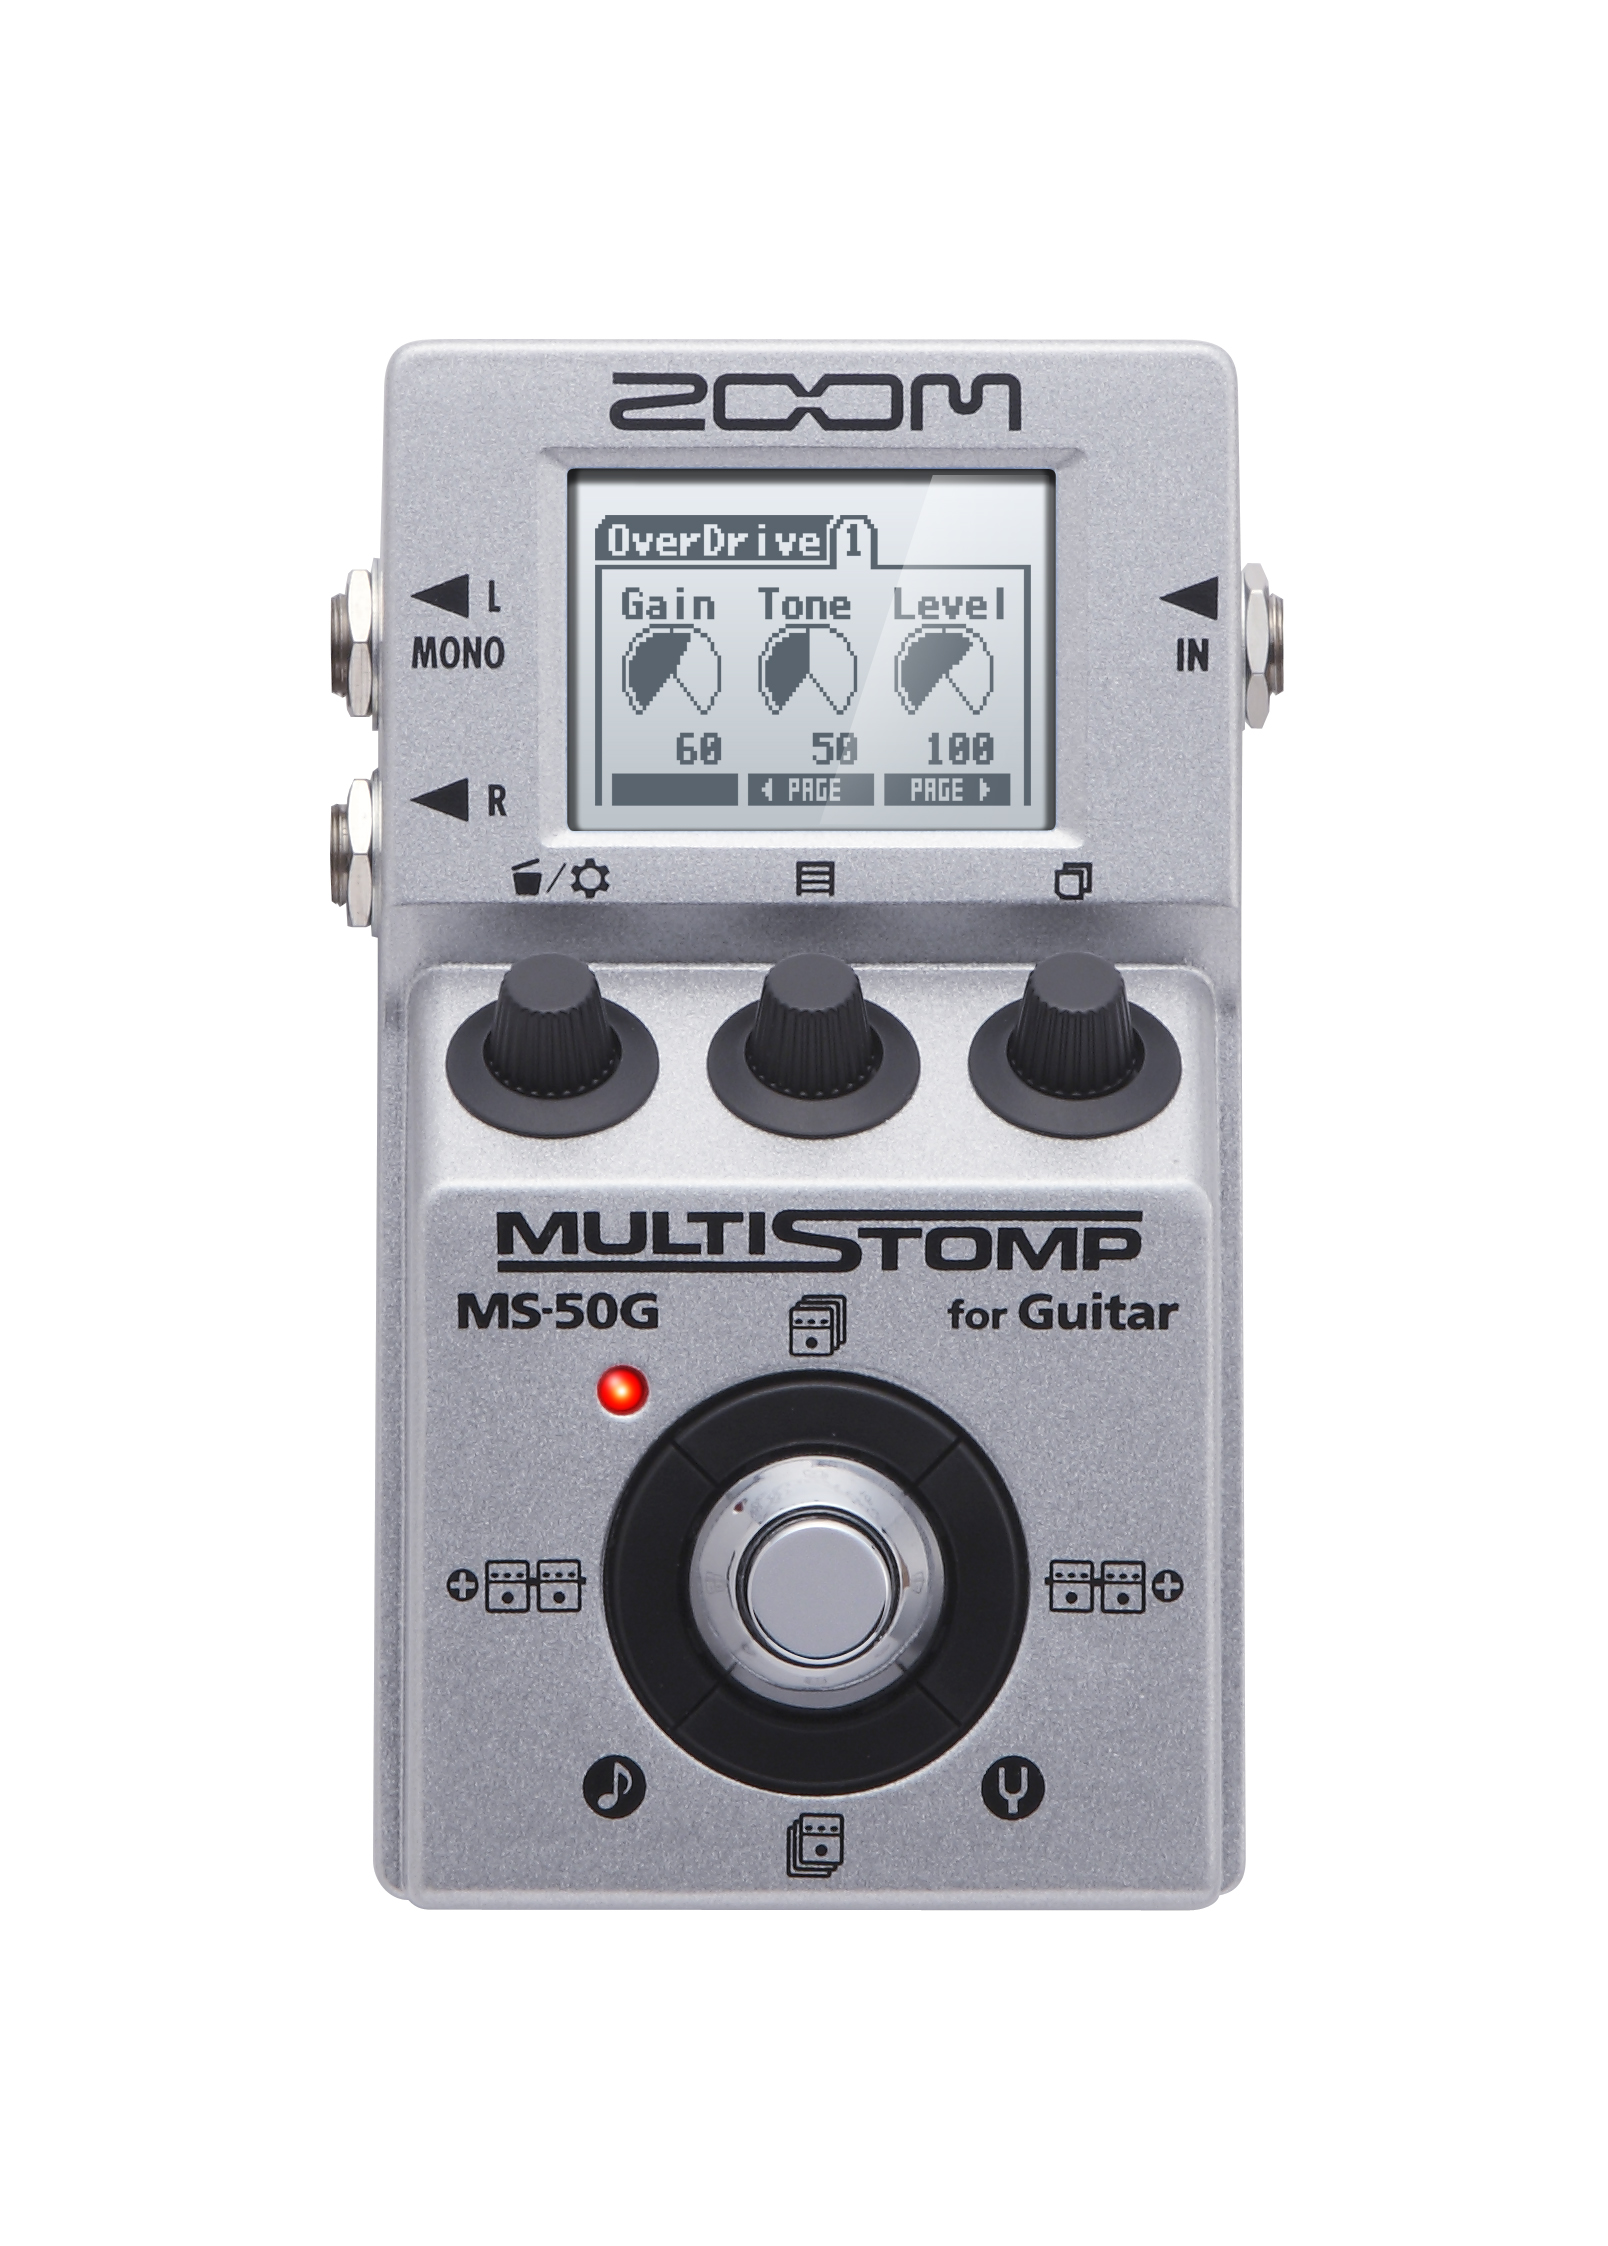 Ms 50g Multistomp Guitar Pedal Zoom